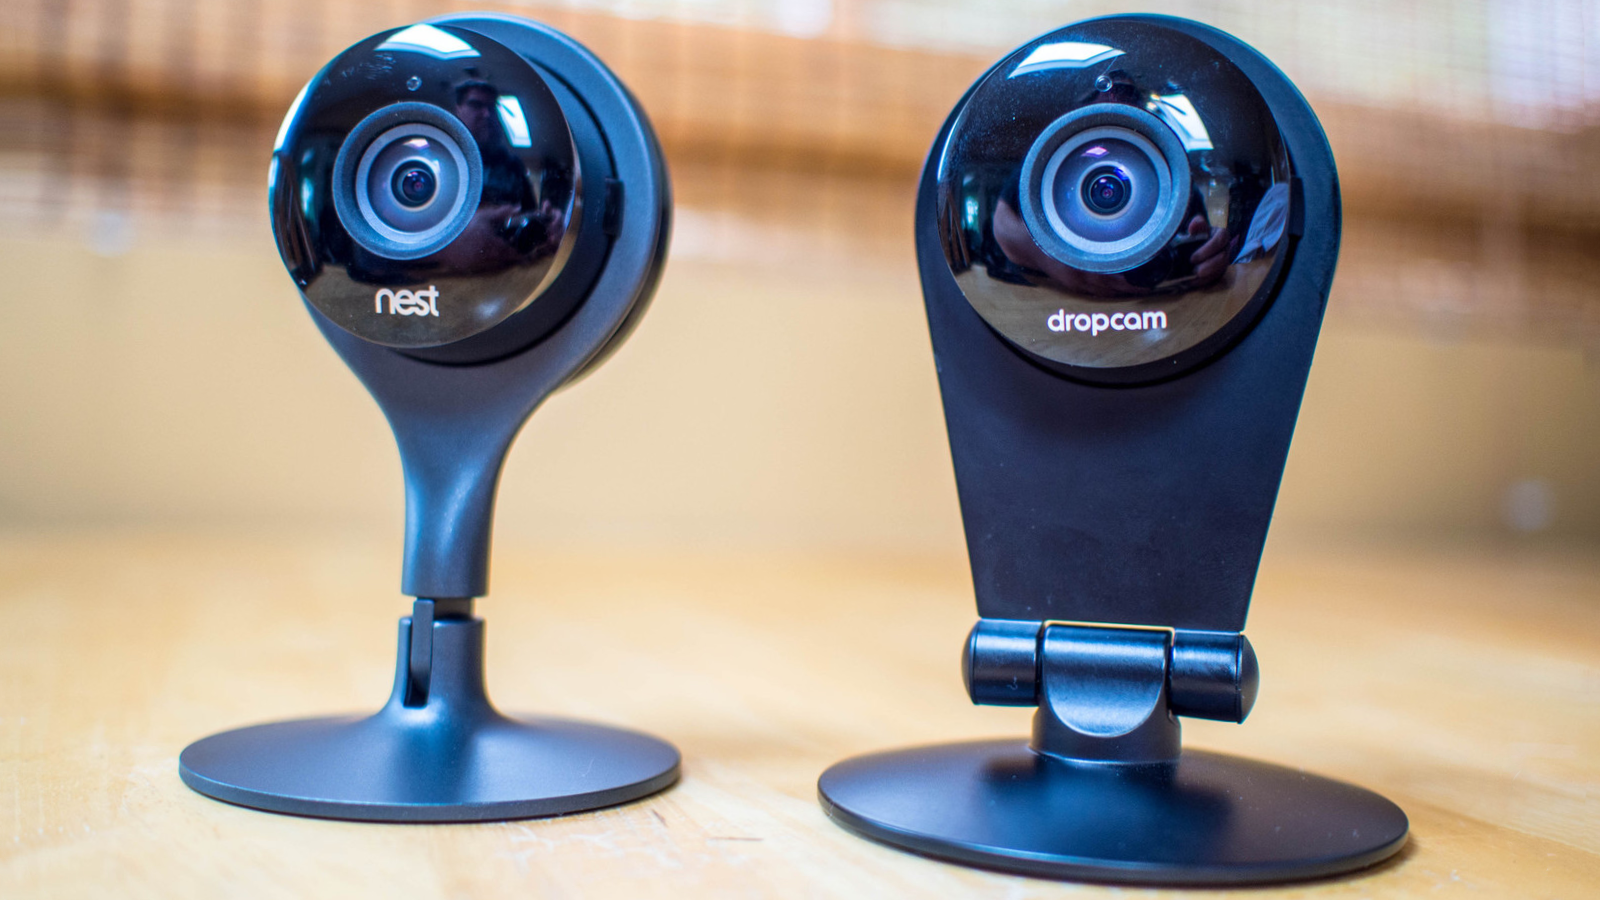 nestcam-dropcam-16x9